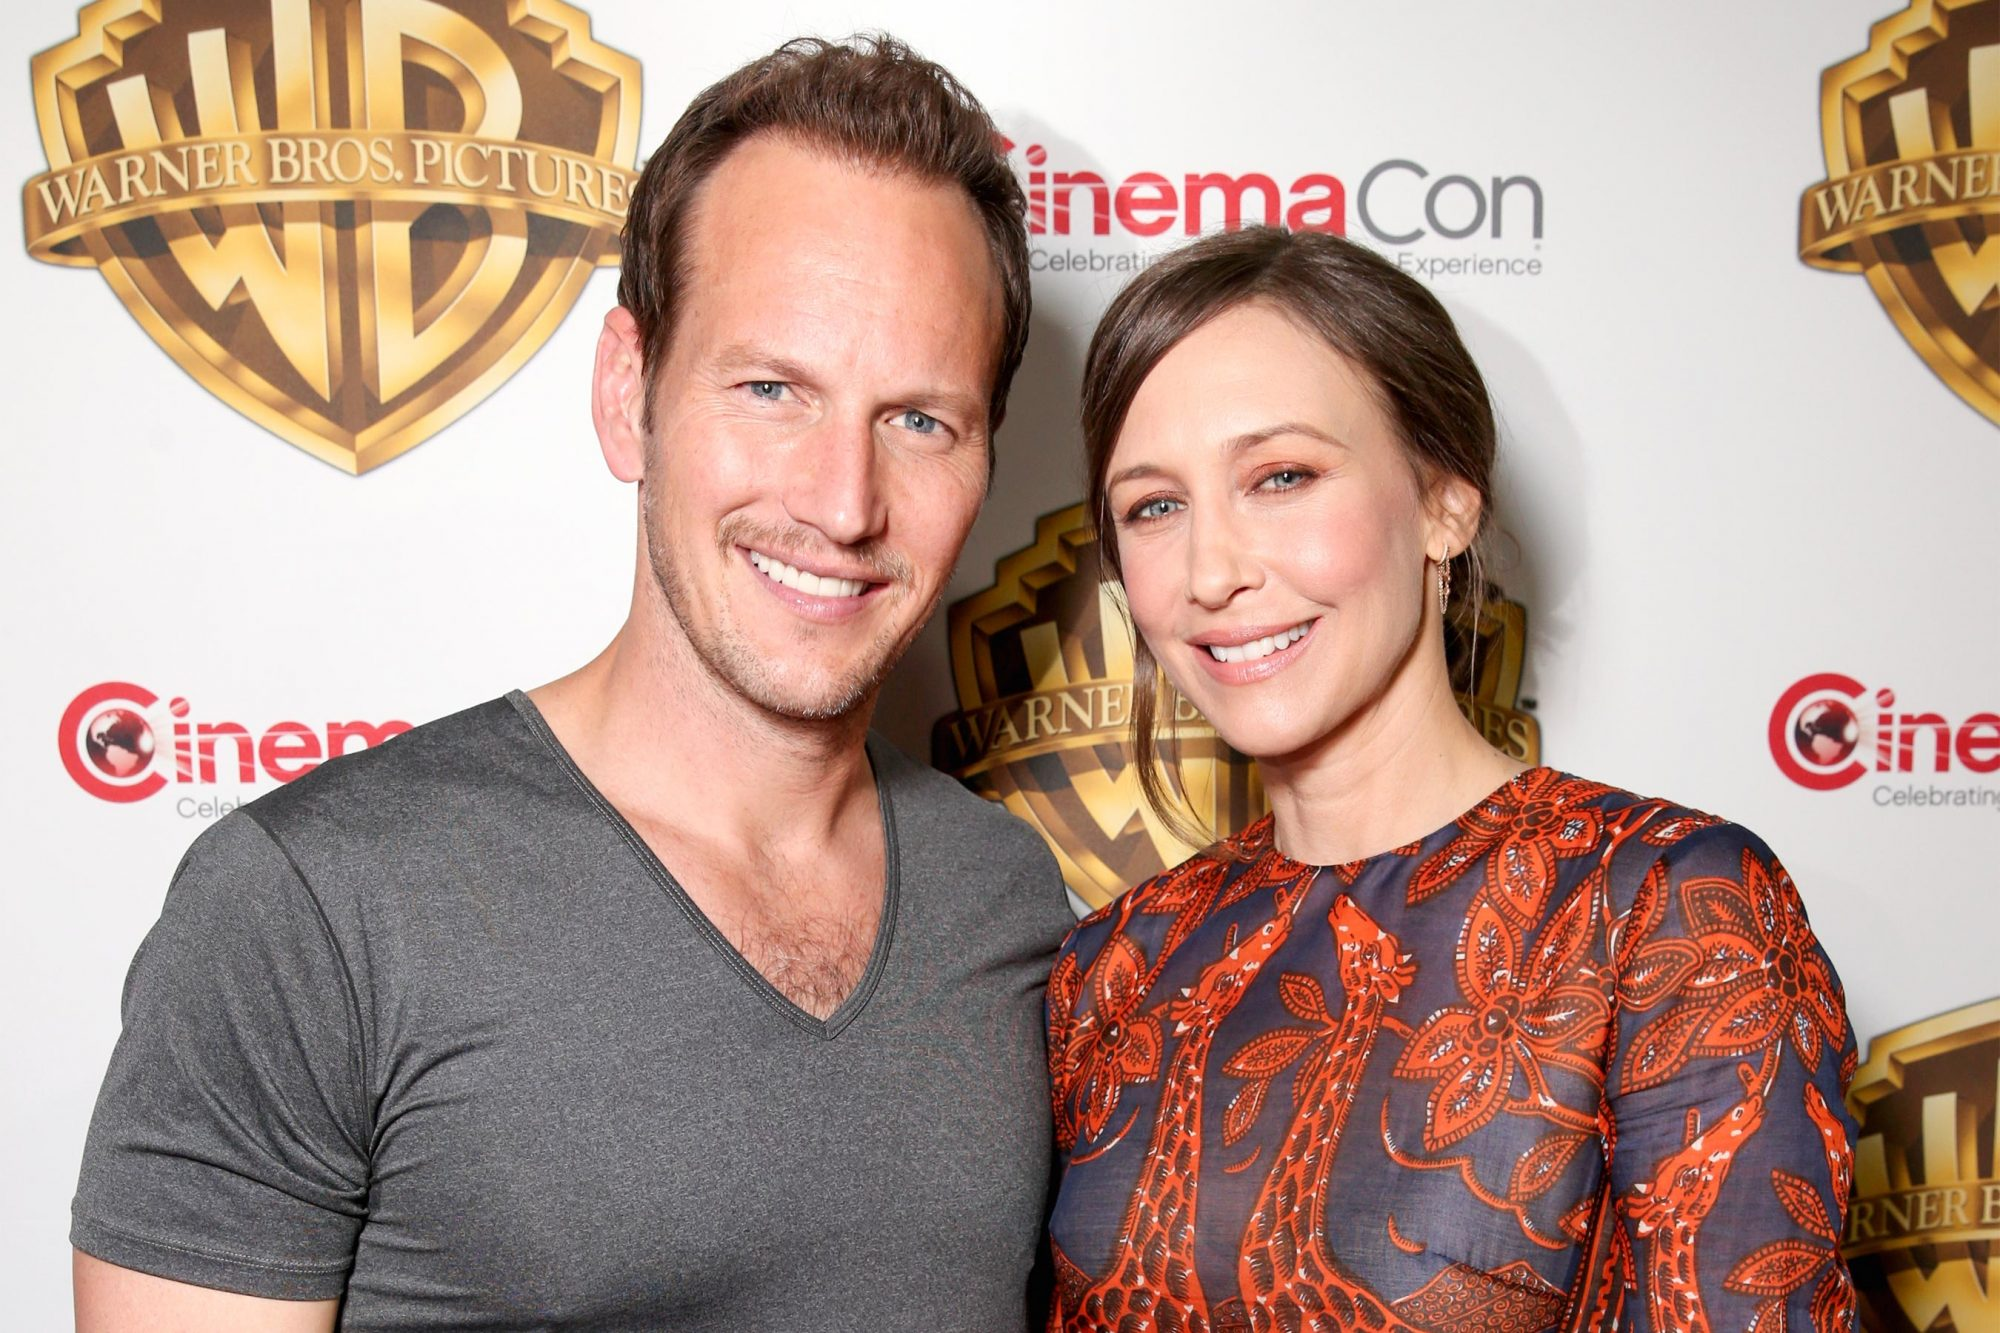 LAS VEGAS, NV - APRIL 12: Actors Patrick Wilson (L) and Vera Farmiga of 'The Conjuring 2' attend CinemaCon 2016 Warner Bros. Pictures Invites You to ?The Big Picture?, an Exclusive Presentation Highlighting the Summer of 2016 and Beyond at The Colosseum at Caesars Palace during CinemaCon, the official convention of the National Association of Theatre Owners, on April 12, 2016 in Las Vegas, Nevada. (Photo by Todd Williamson/Getty Images for CinemaCon)